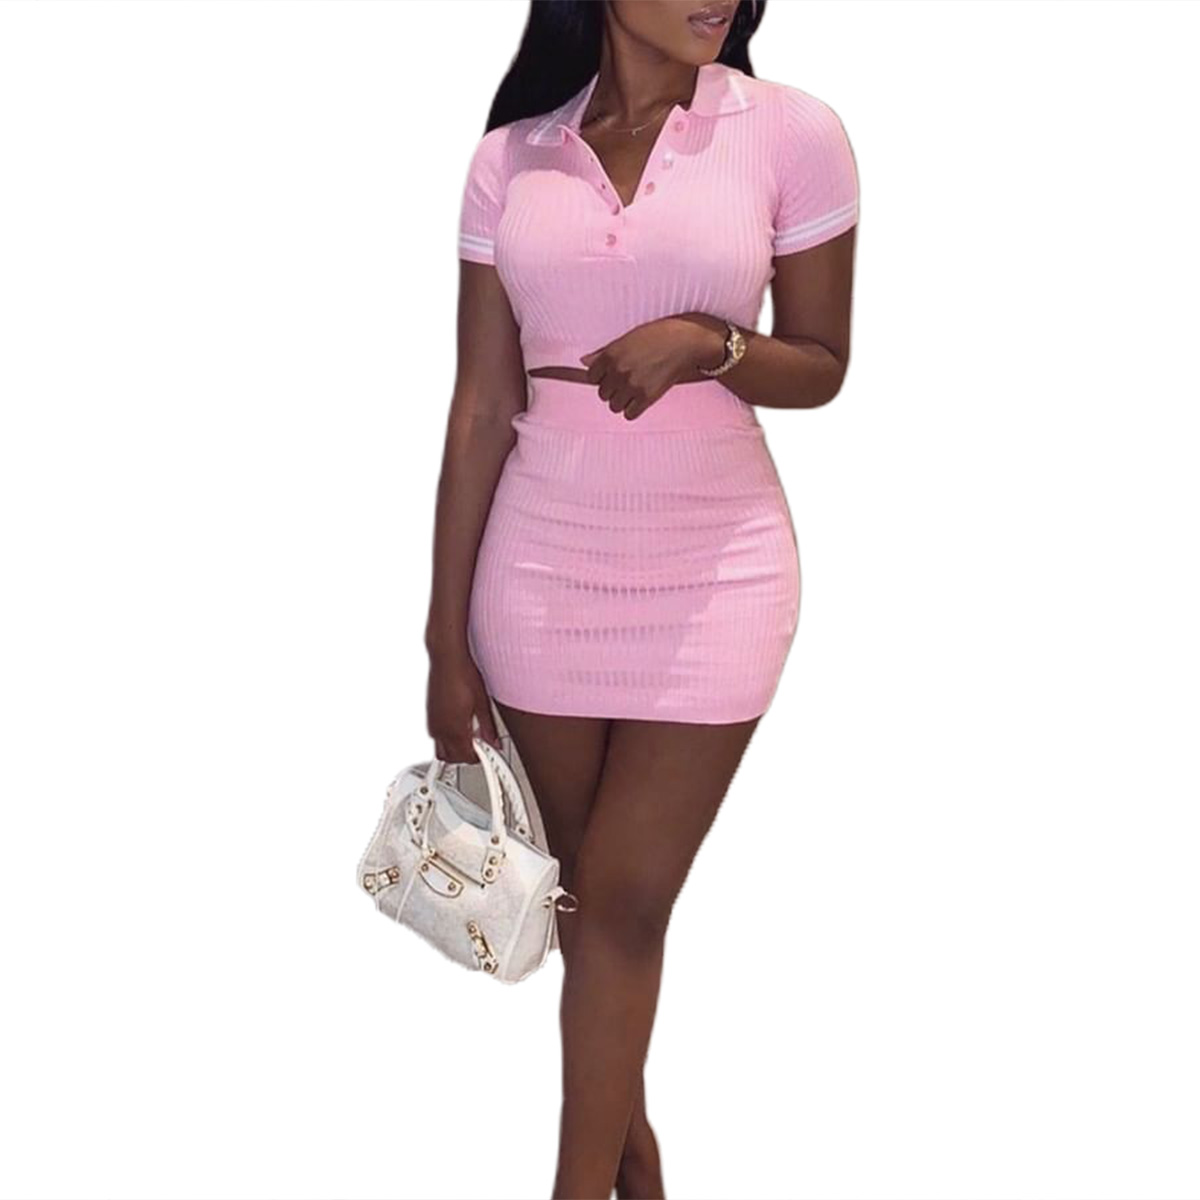 Knitting Ribbed Fashion Women Two Piece Sets Short Sleeve Casual Bodycon Outfits Button Crop Top And Skirt Co-ord Set